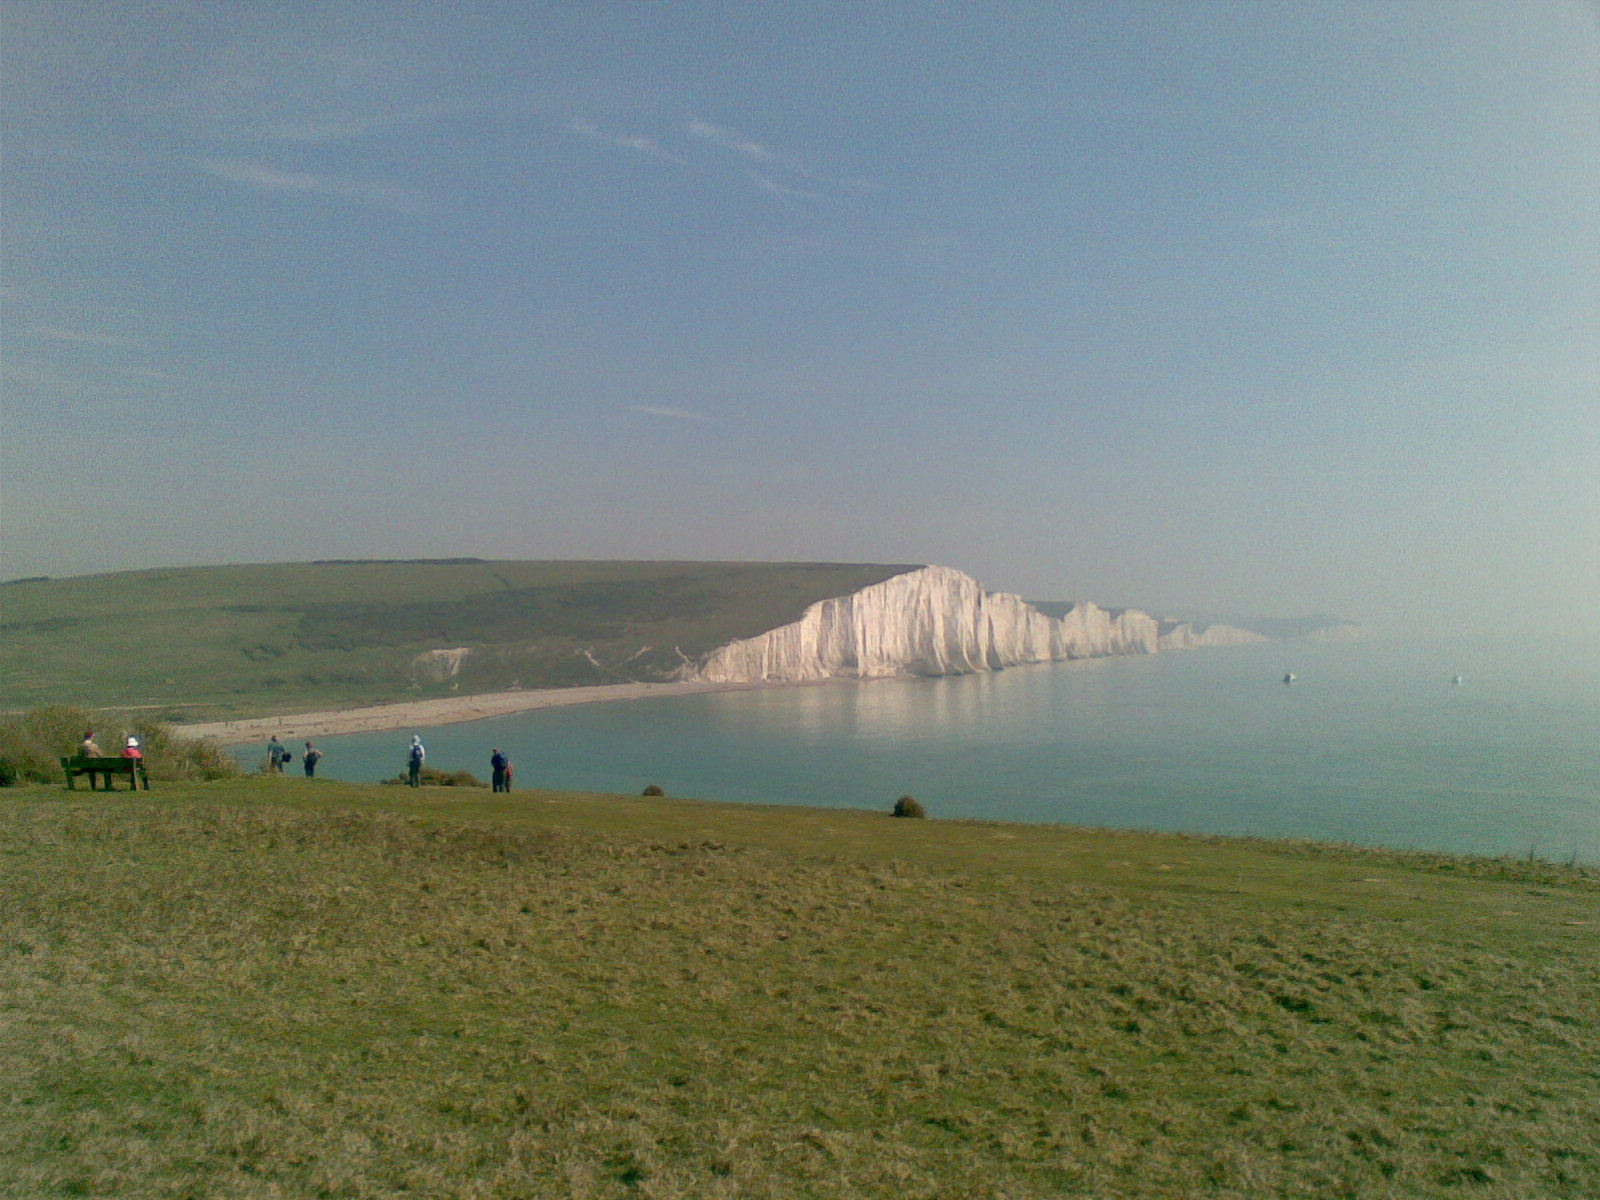 The Seven Sisters, South Downs Between Eastbourne and Seaford on the South Coast, the Seven Sisters are even more dramatic than the White Cliffs of Dover.